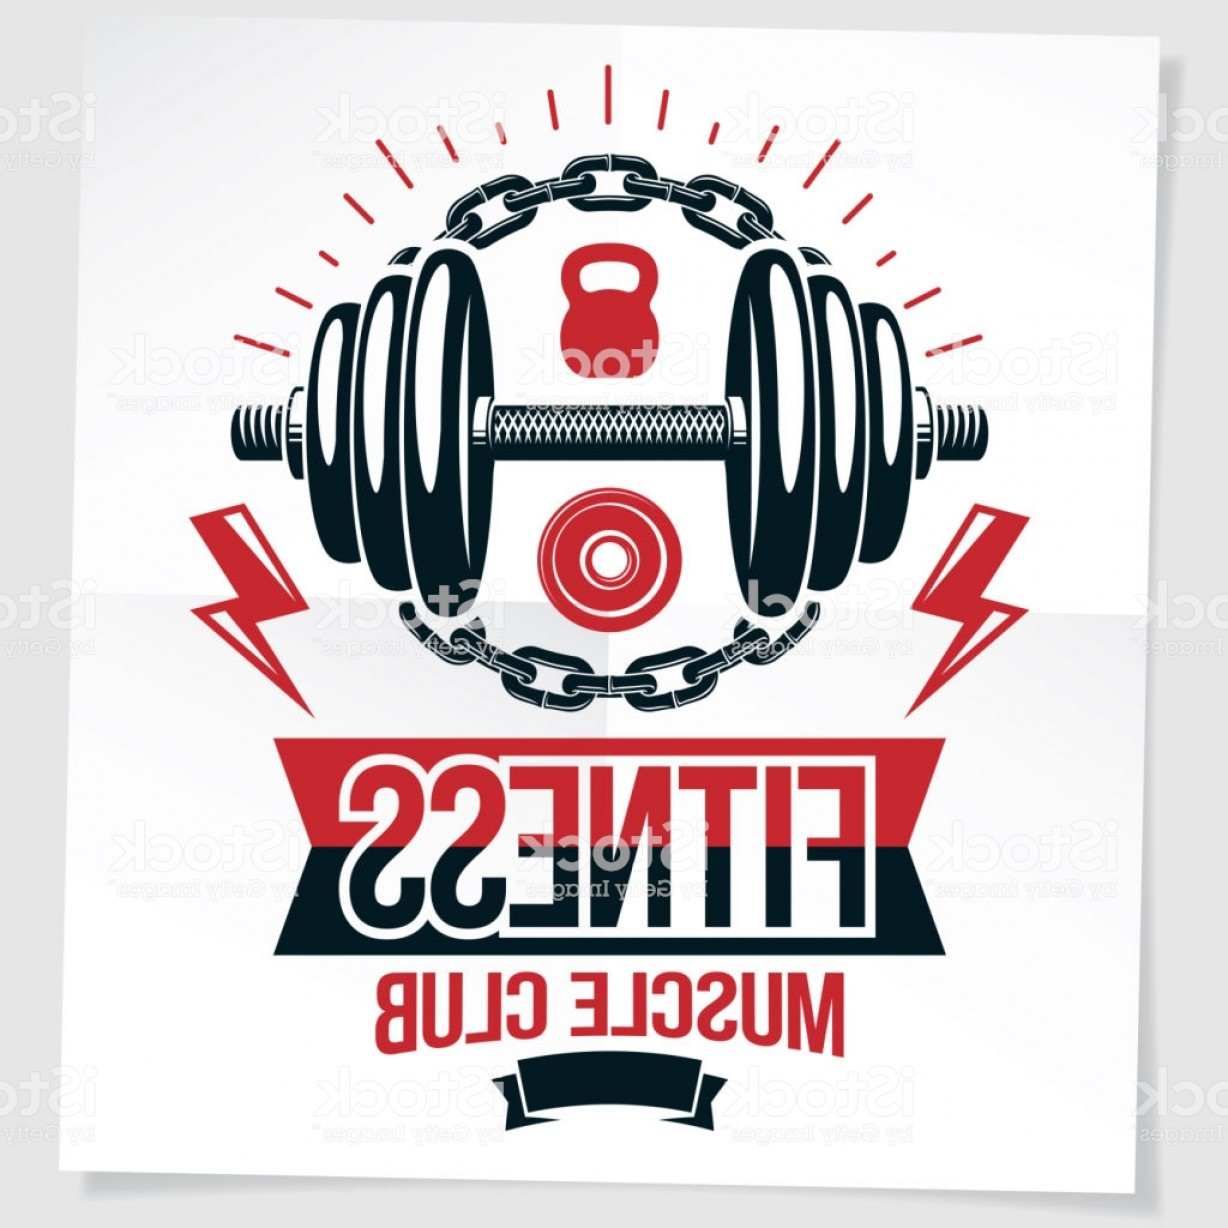 Vector Marketing.com: Fitness Center Vector Marketing Banner Made Using Disc Weight Dumbbell And Kettle Gm